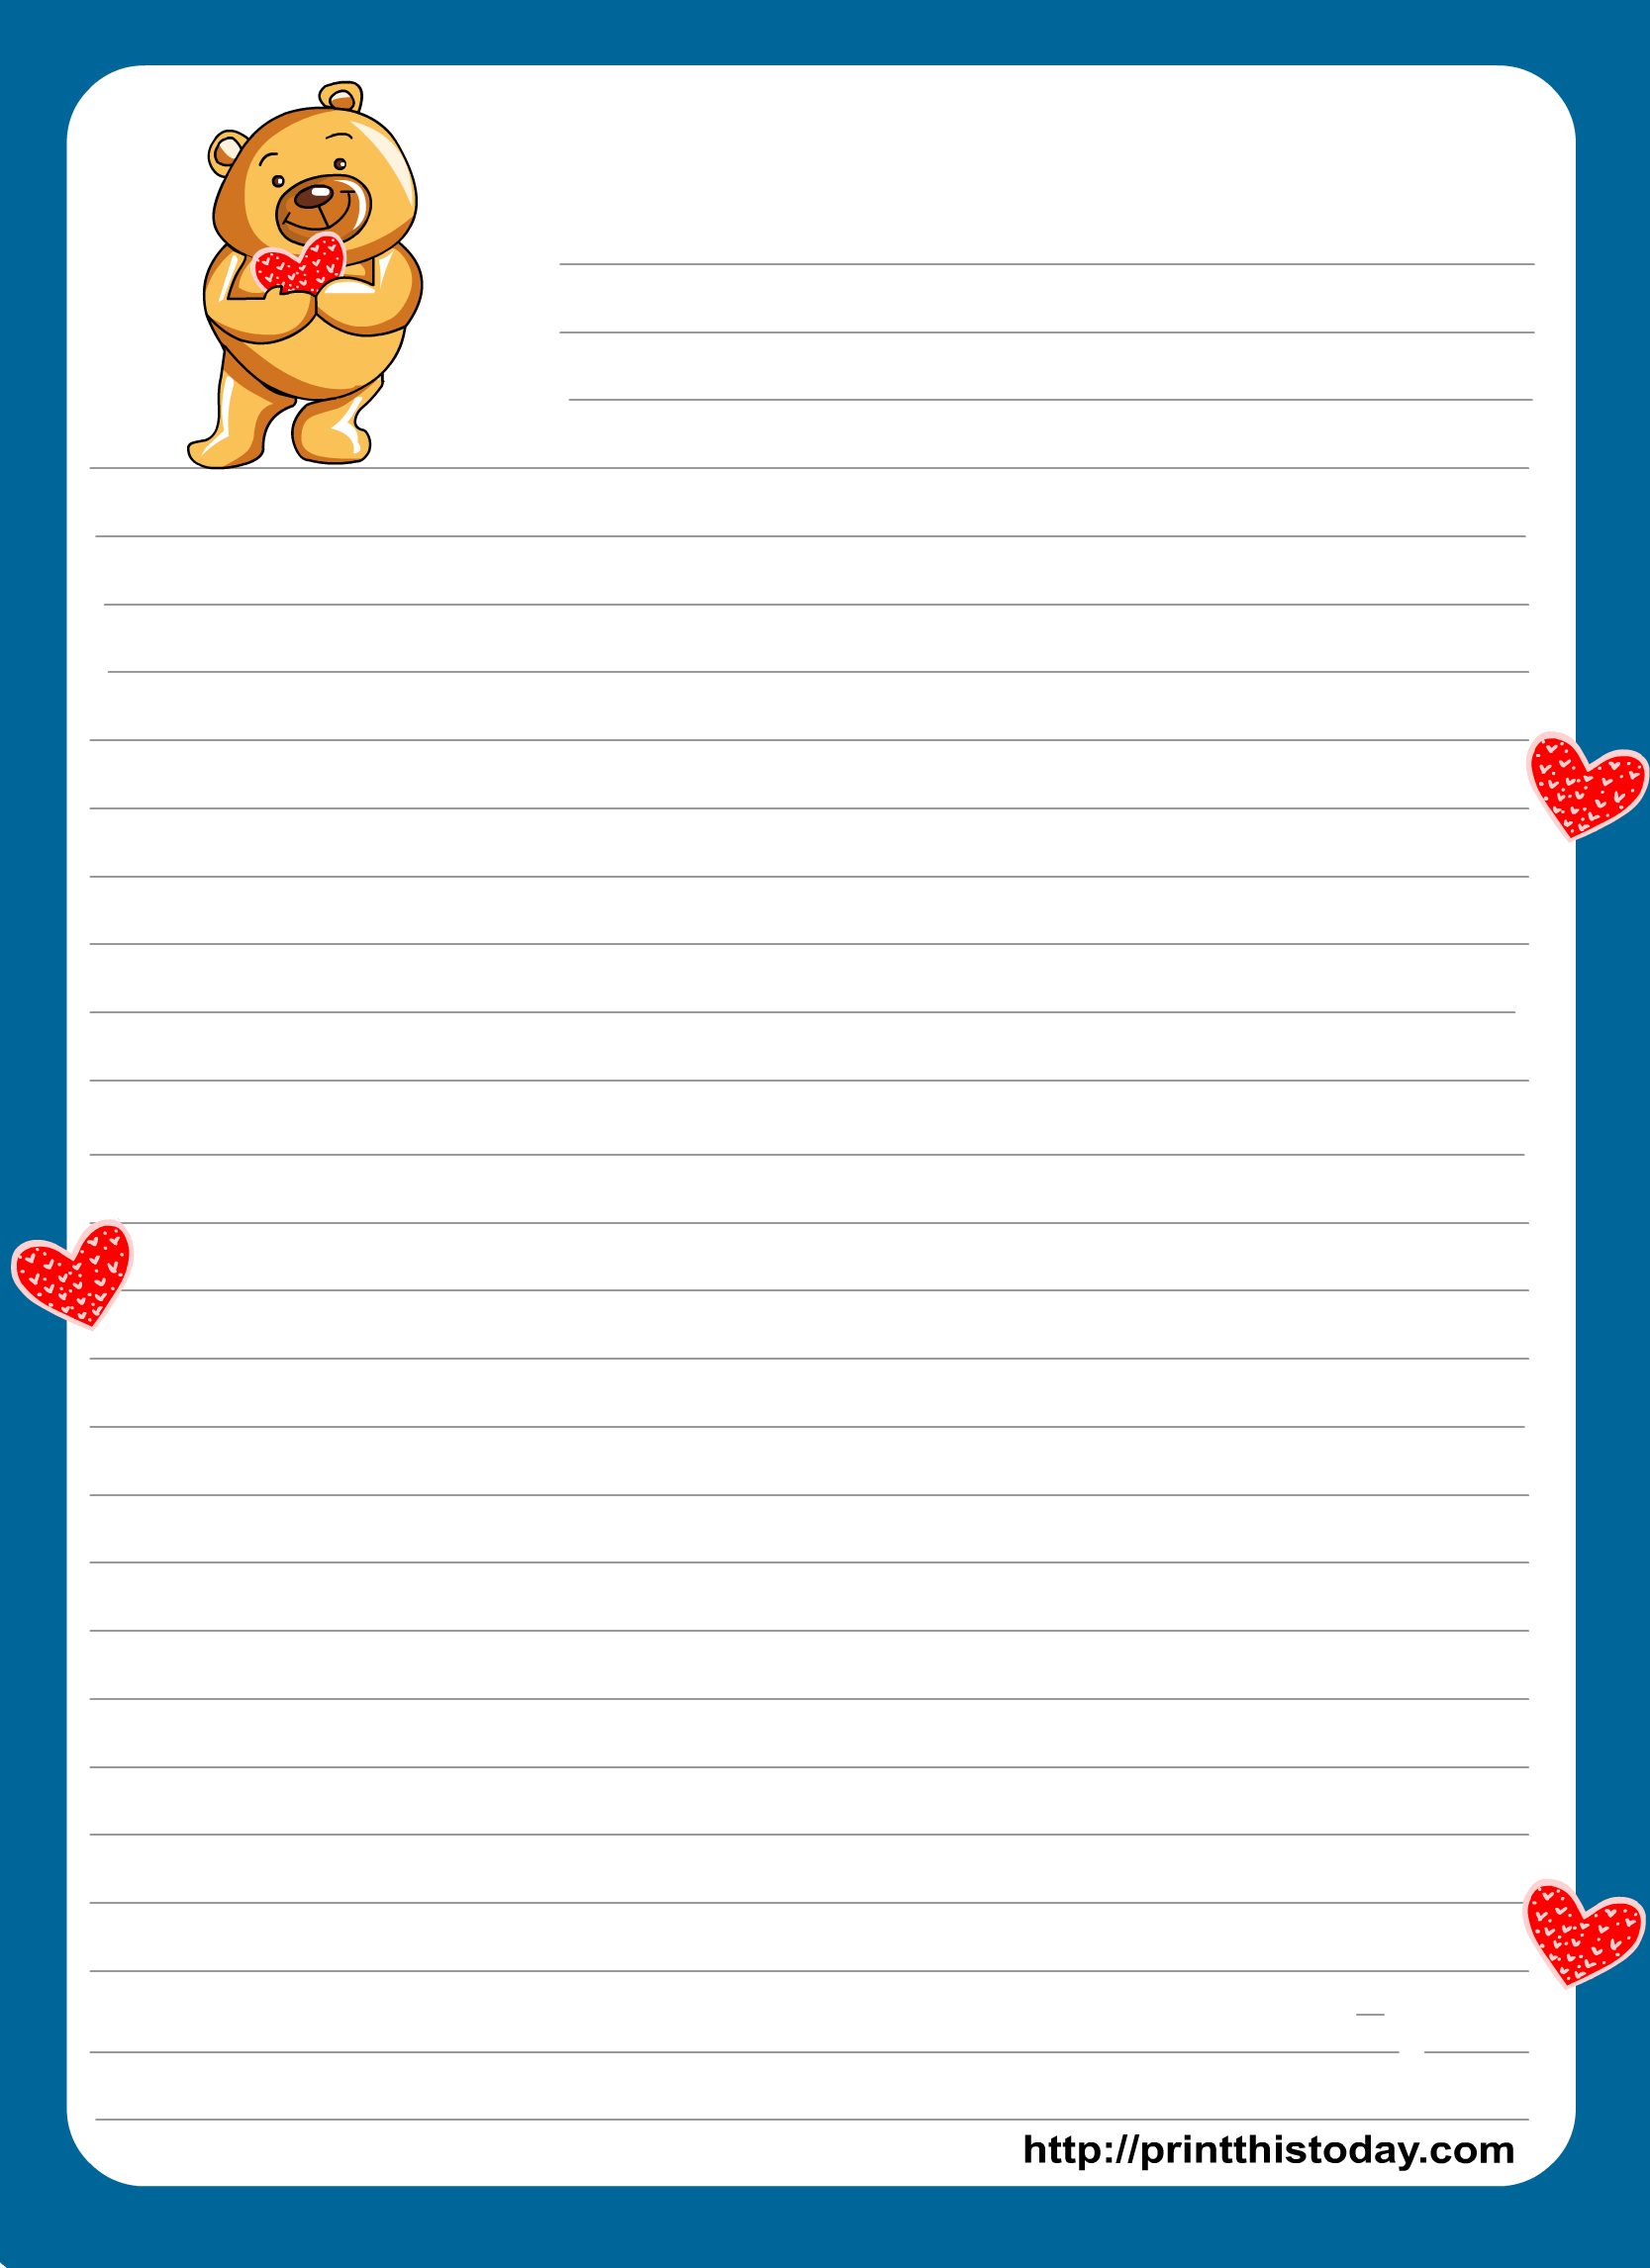 Teddy clipart border Cute paper border writing for